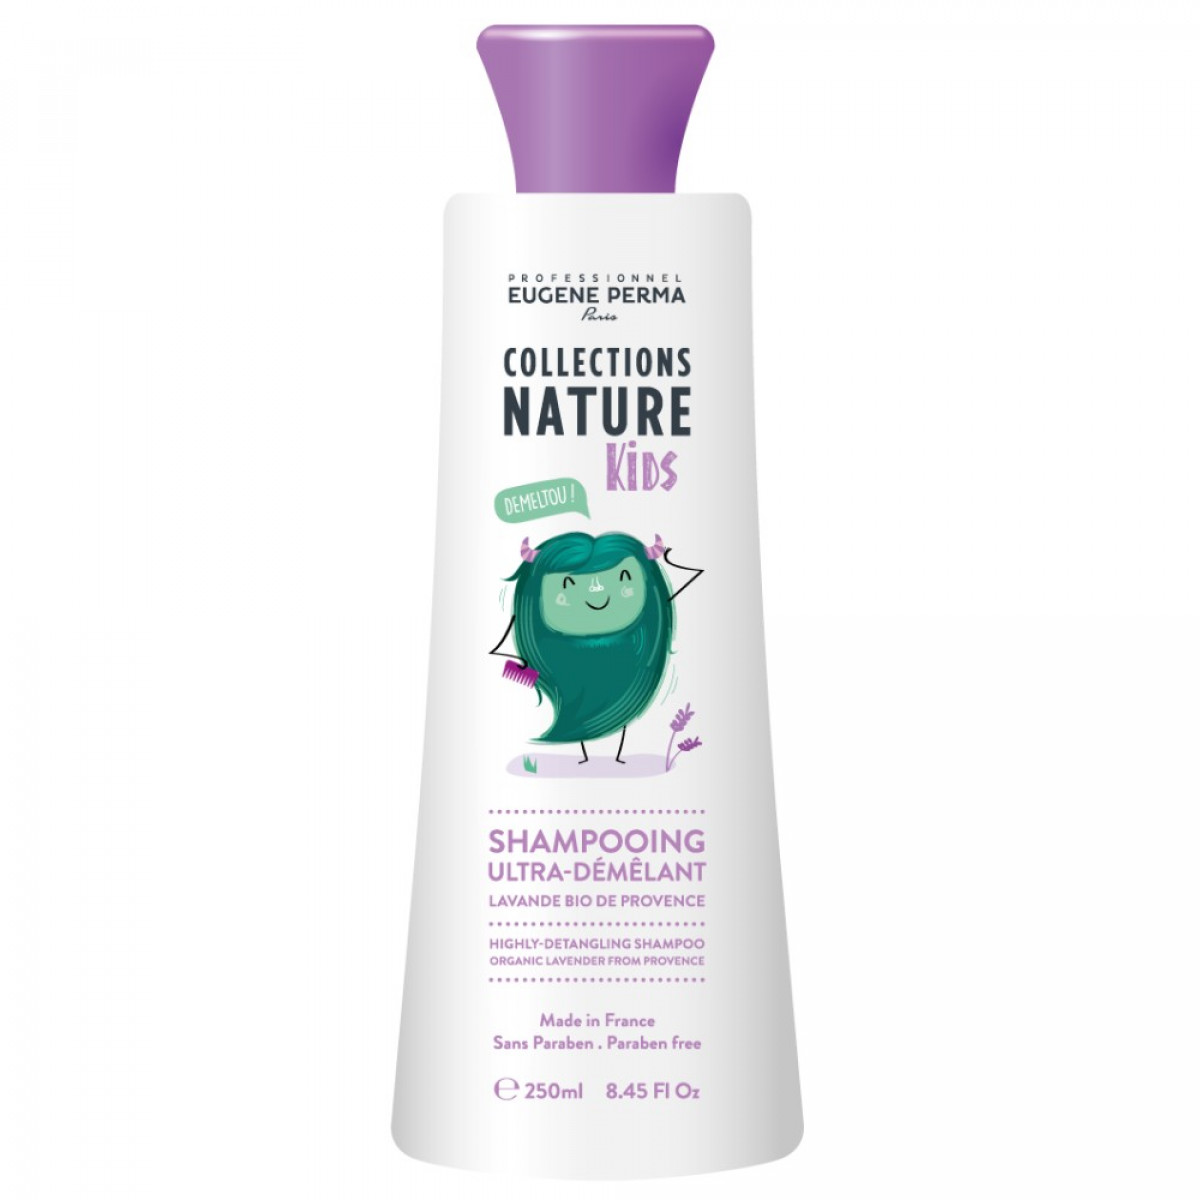 Shampooing ultra démélant Natural kids 250ml Eugene Perma